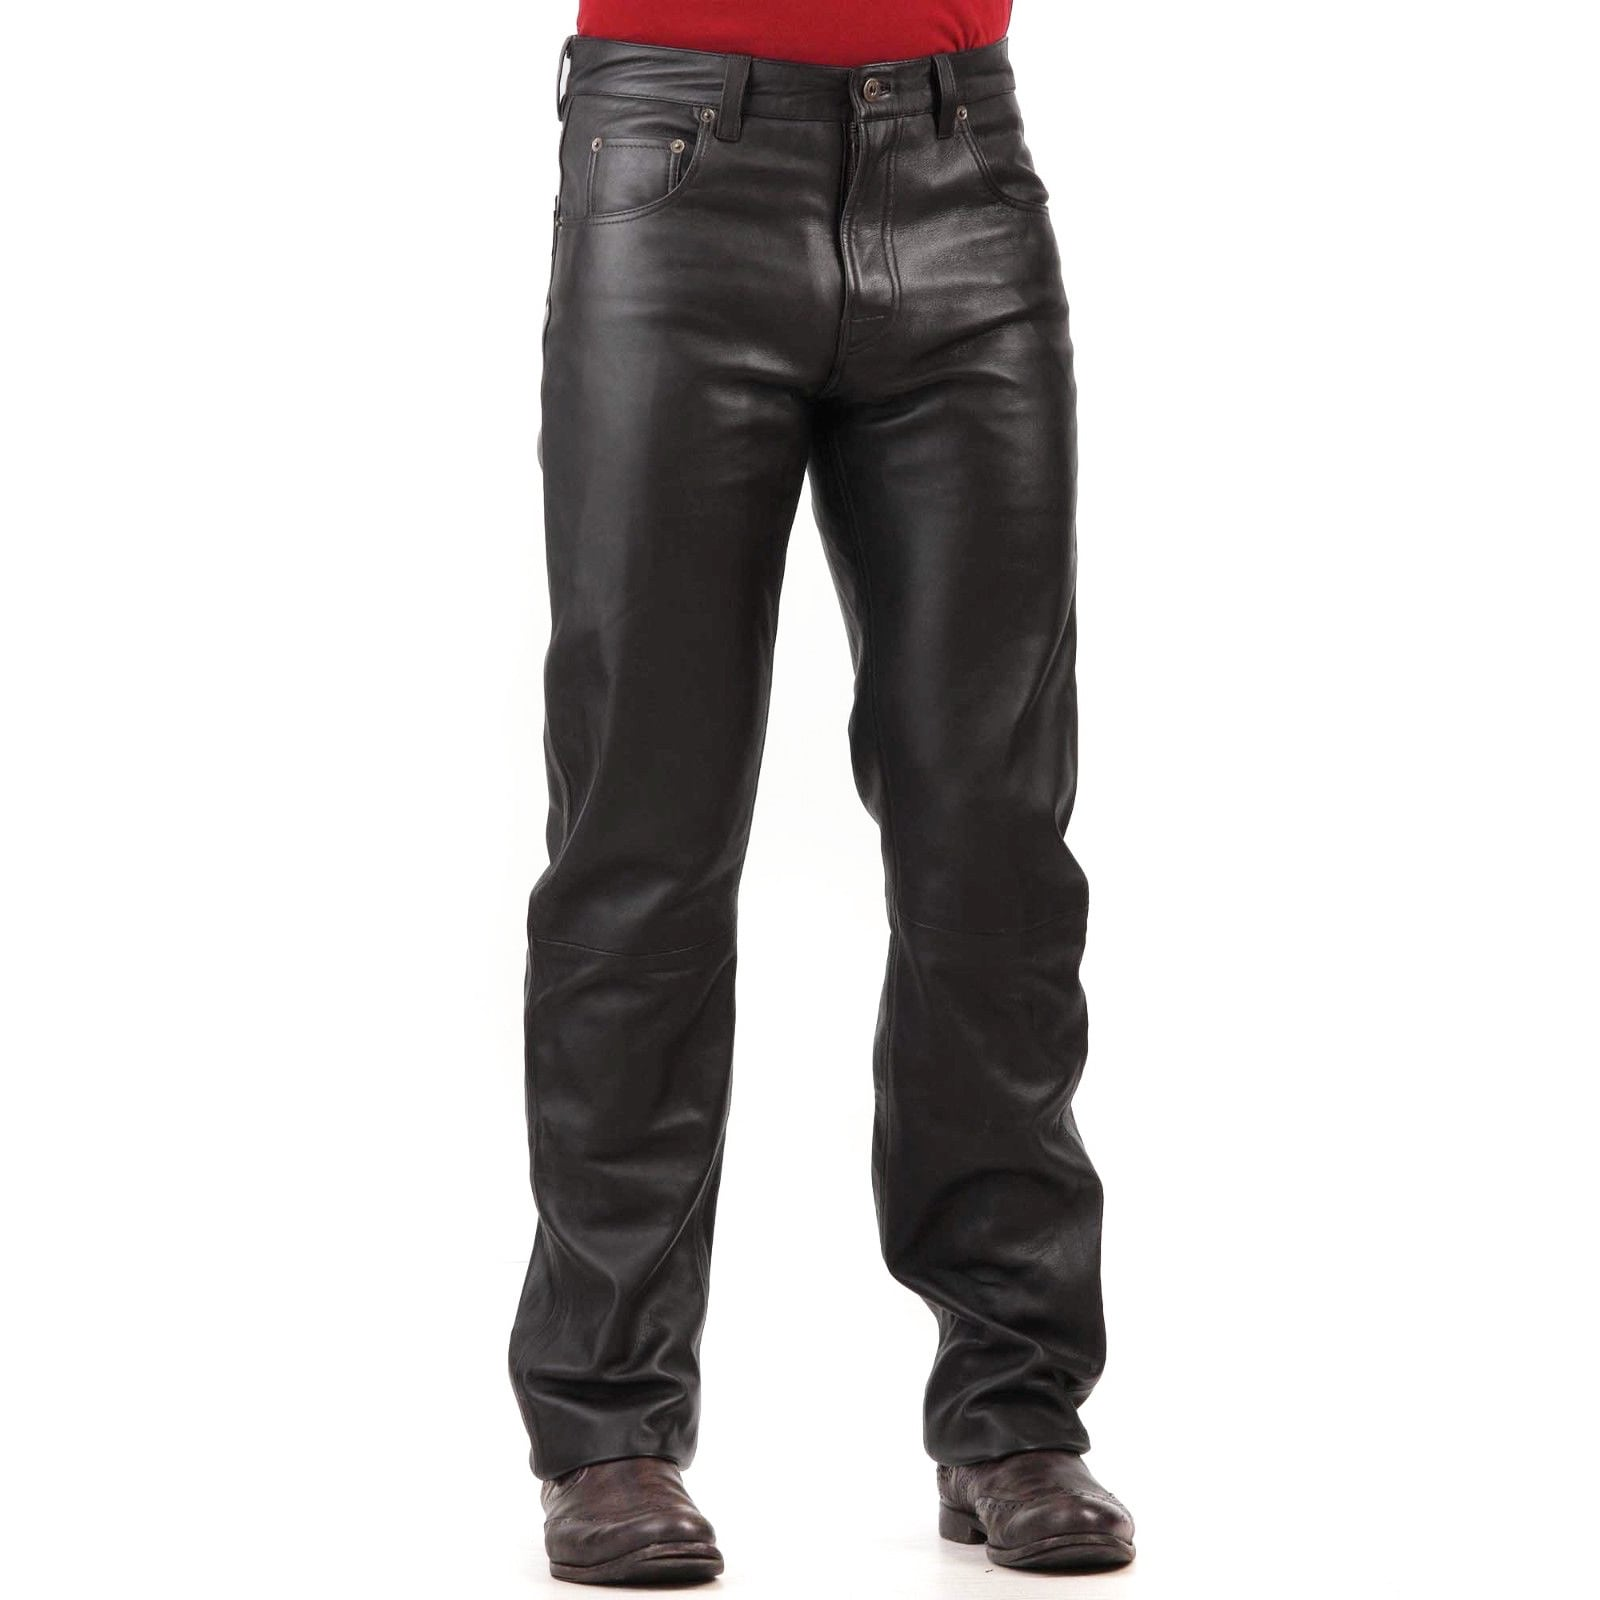 – Mens Pants Black Leather Dacc Dress 5qRL34AjSc